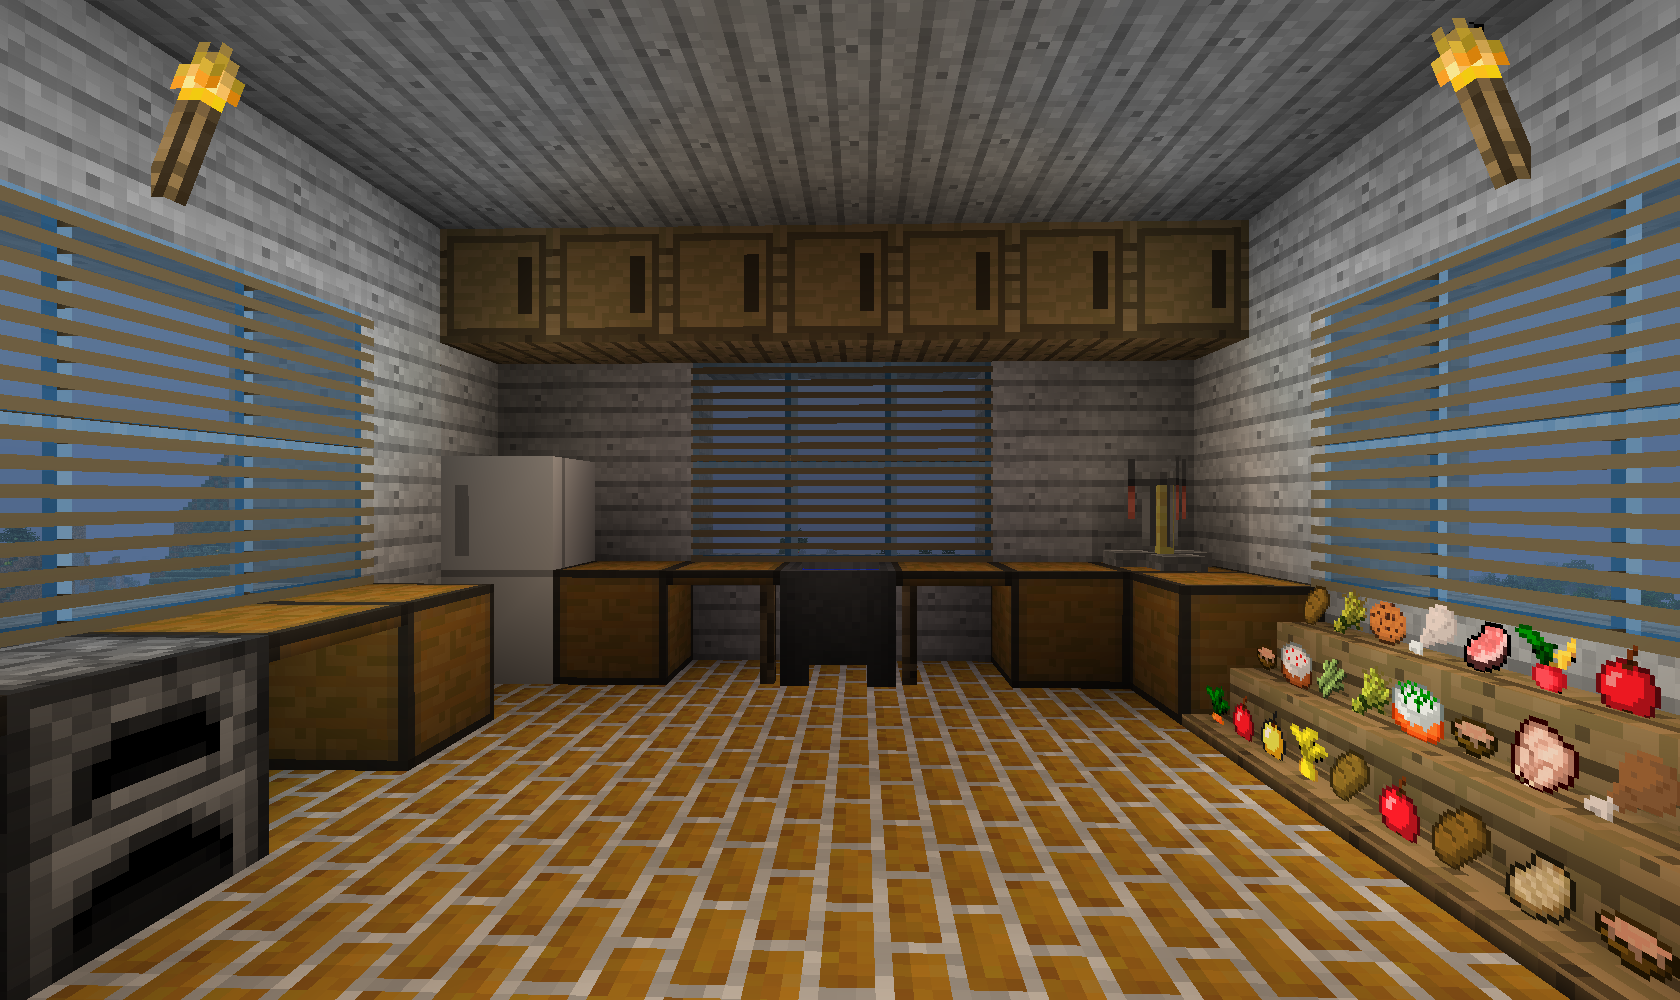 minecraft interior design kitchen minecraft kitchen only will use item frames for the food 20614